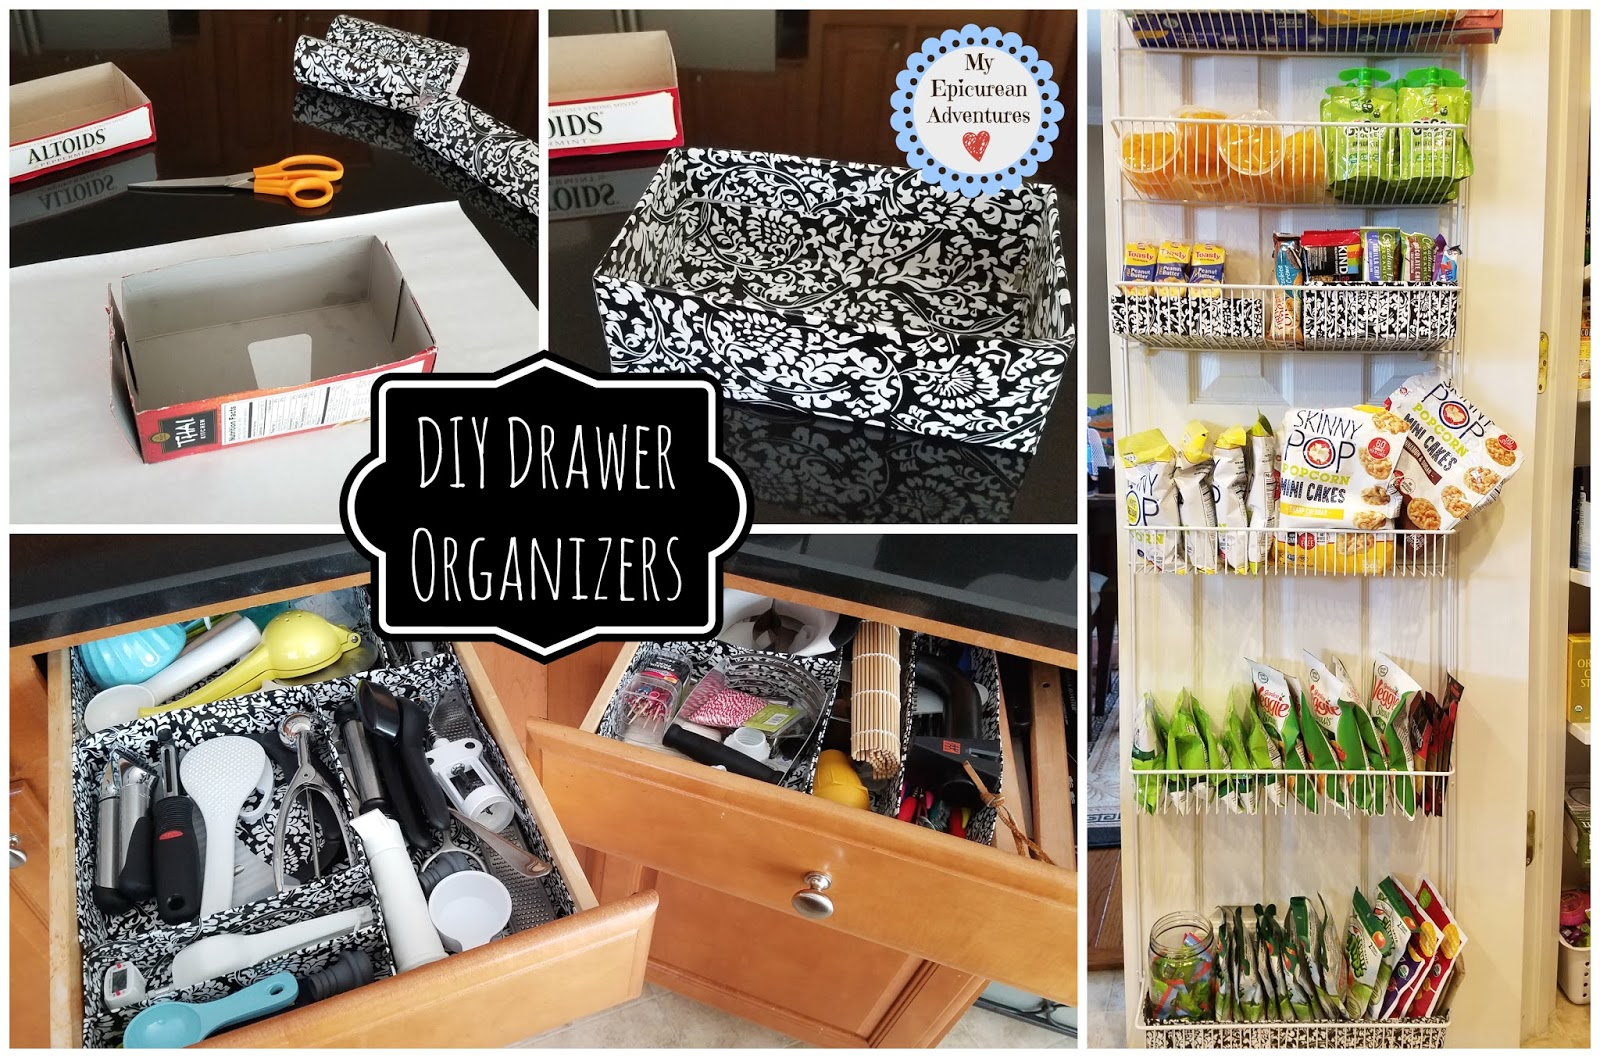 My epicurean adventures do it yourself drawer organizers using diy drawershelf organizers made cheap and easy using contact paper and cereal boxes solutioingenieria Gallery